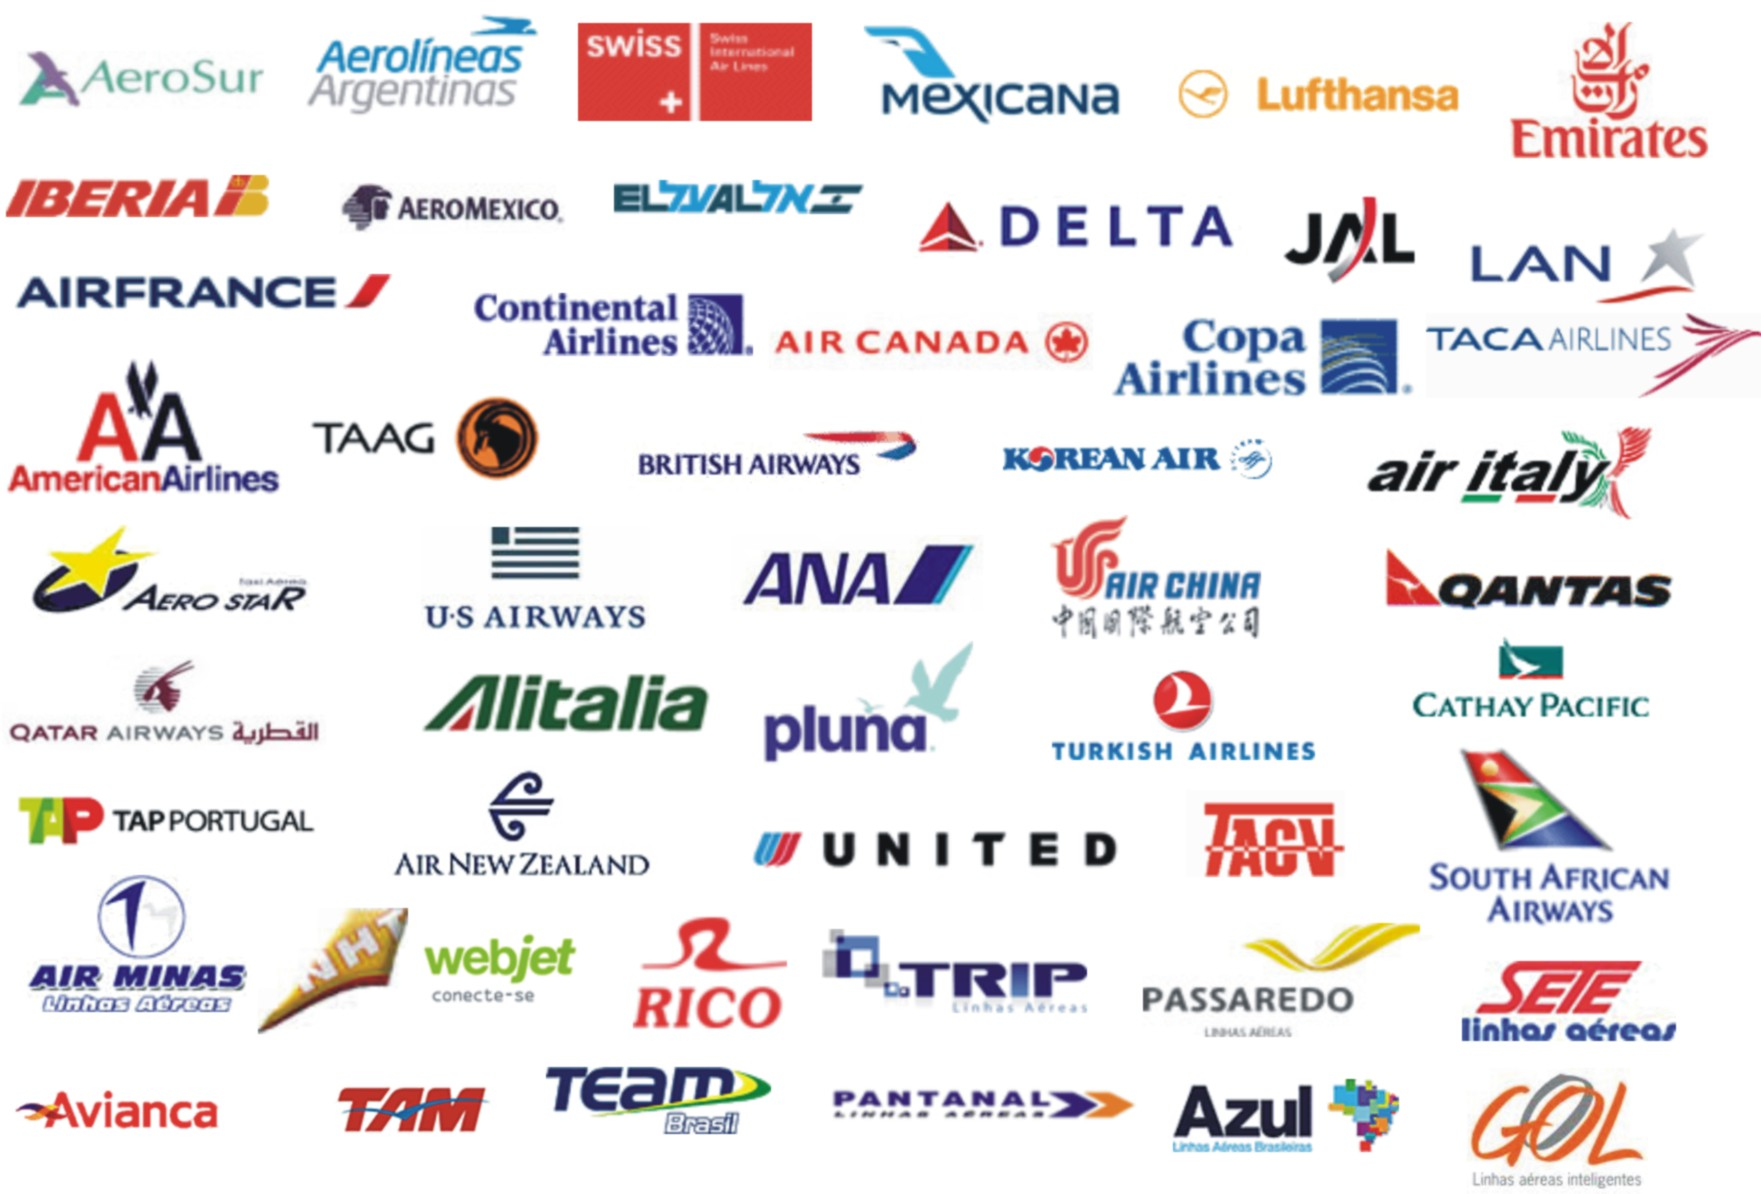 Fly with Azul Brazilian Airlines - united.com